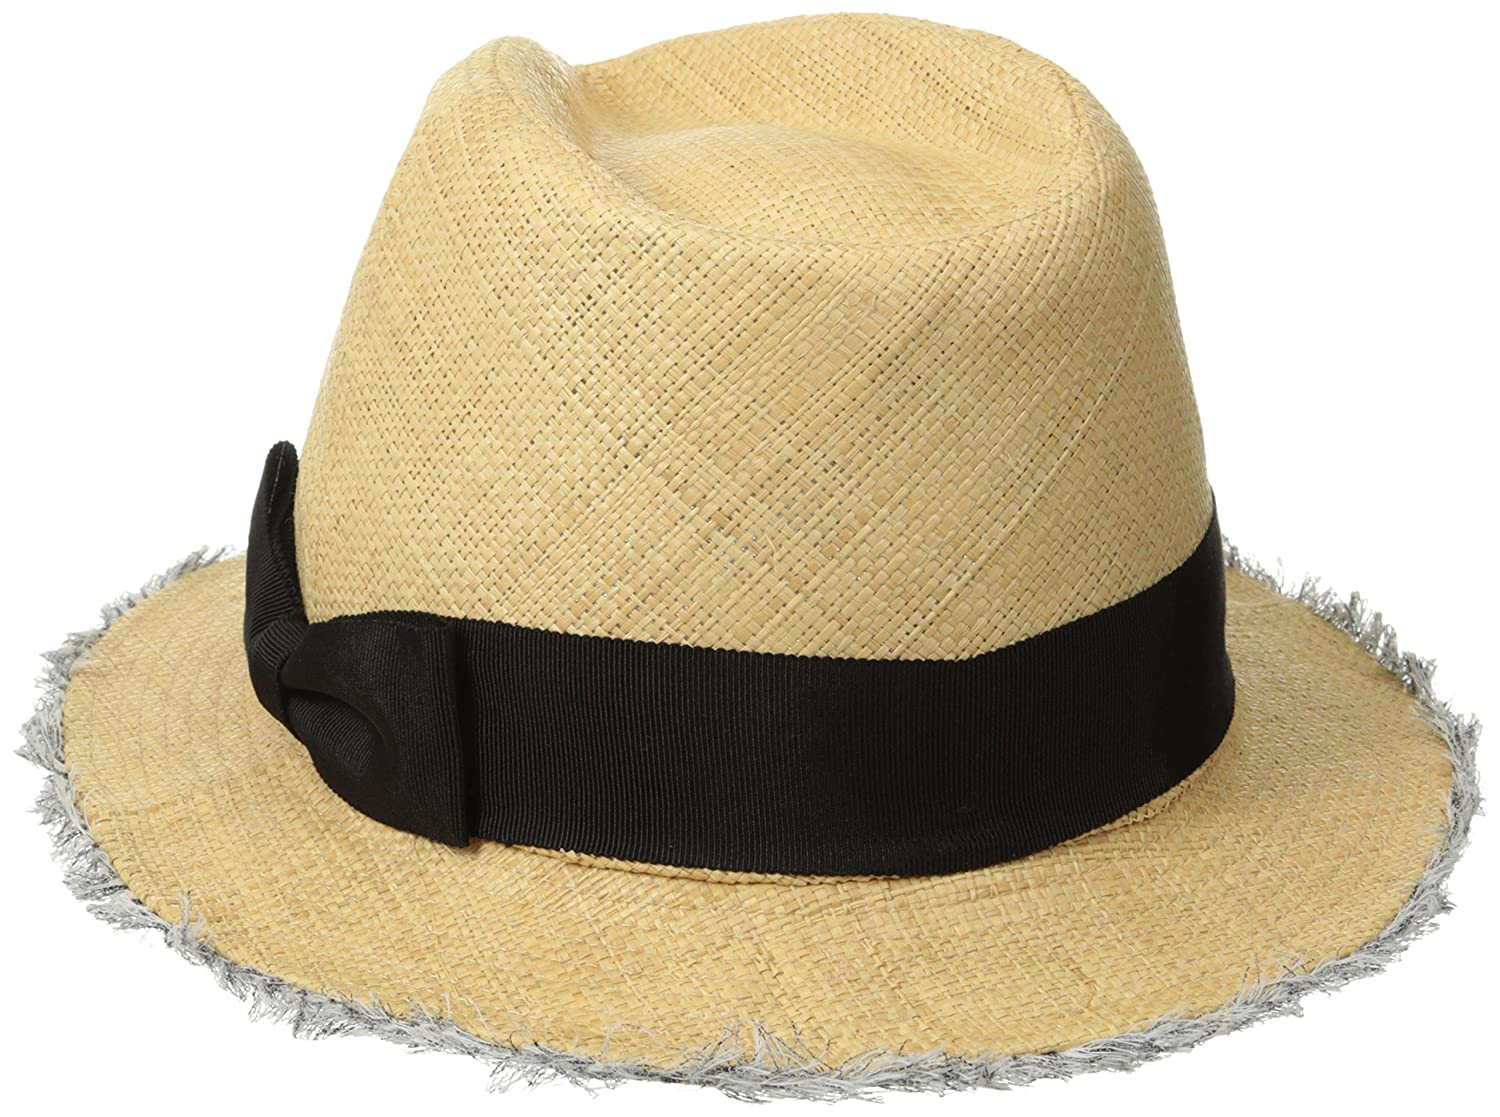 9e299a10ceabeb San Diego Hat Company Women's Raffia Fray Edge Panama Fedora with Ribbon  Bow, Natural, One Size at Amazon Women's Clothing store: